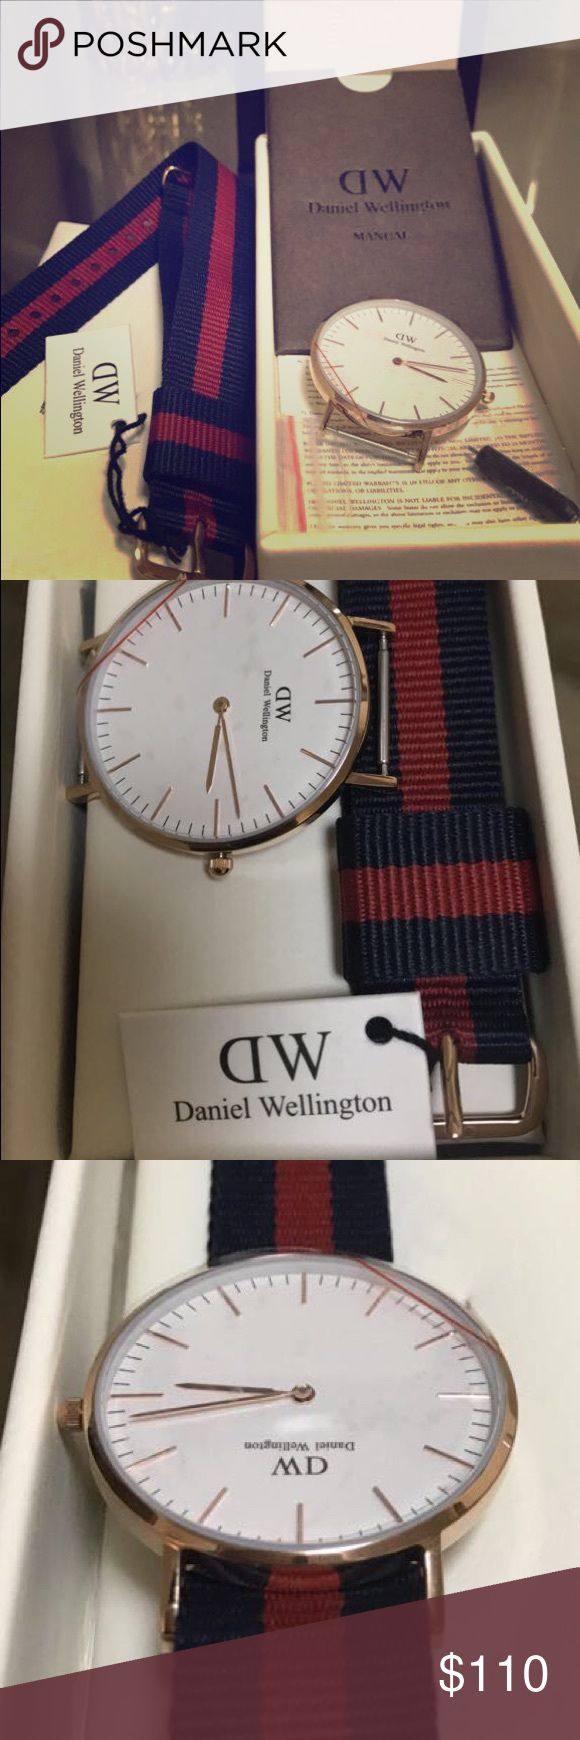 Daniel Wellington Classic Oxford Eggshell White Daniel Wellington Classic Oxford Eggshell White Dial Two Tone Ladies Watch  BRAND NEW- WITH TAG -100% AUTHENTIC  RETAIL PRICE: $175 Interchangeable NATO Strap Case Size: 36mm Case Thickness: 6mm Dial Color: Eggshell White Water Resistant: 3 ATM(Rain) Japanese Quartz Movement Daniel Wellington Accessories Watches